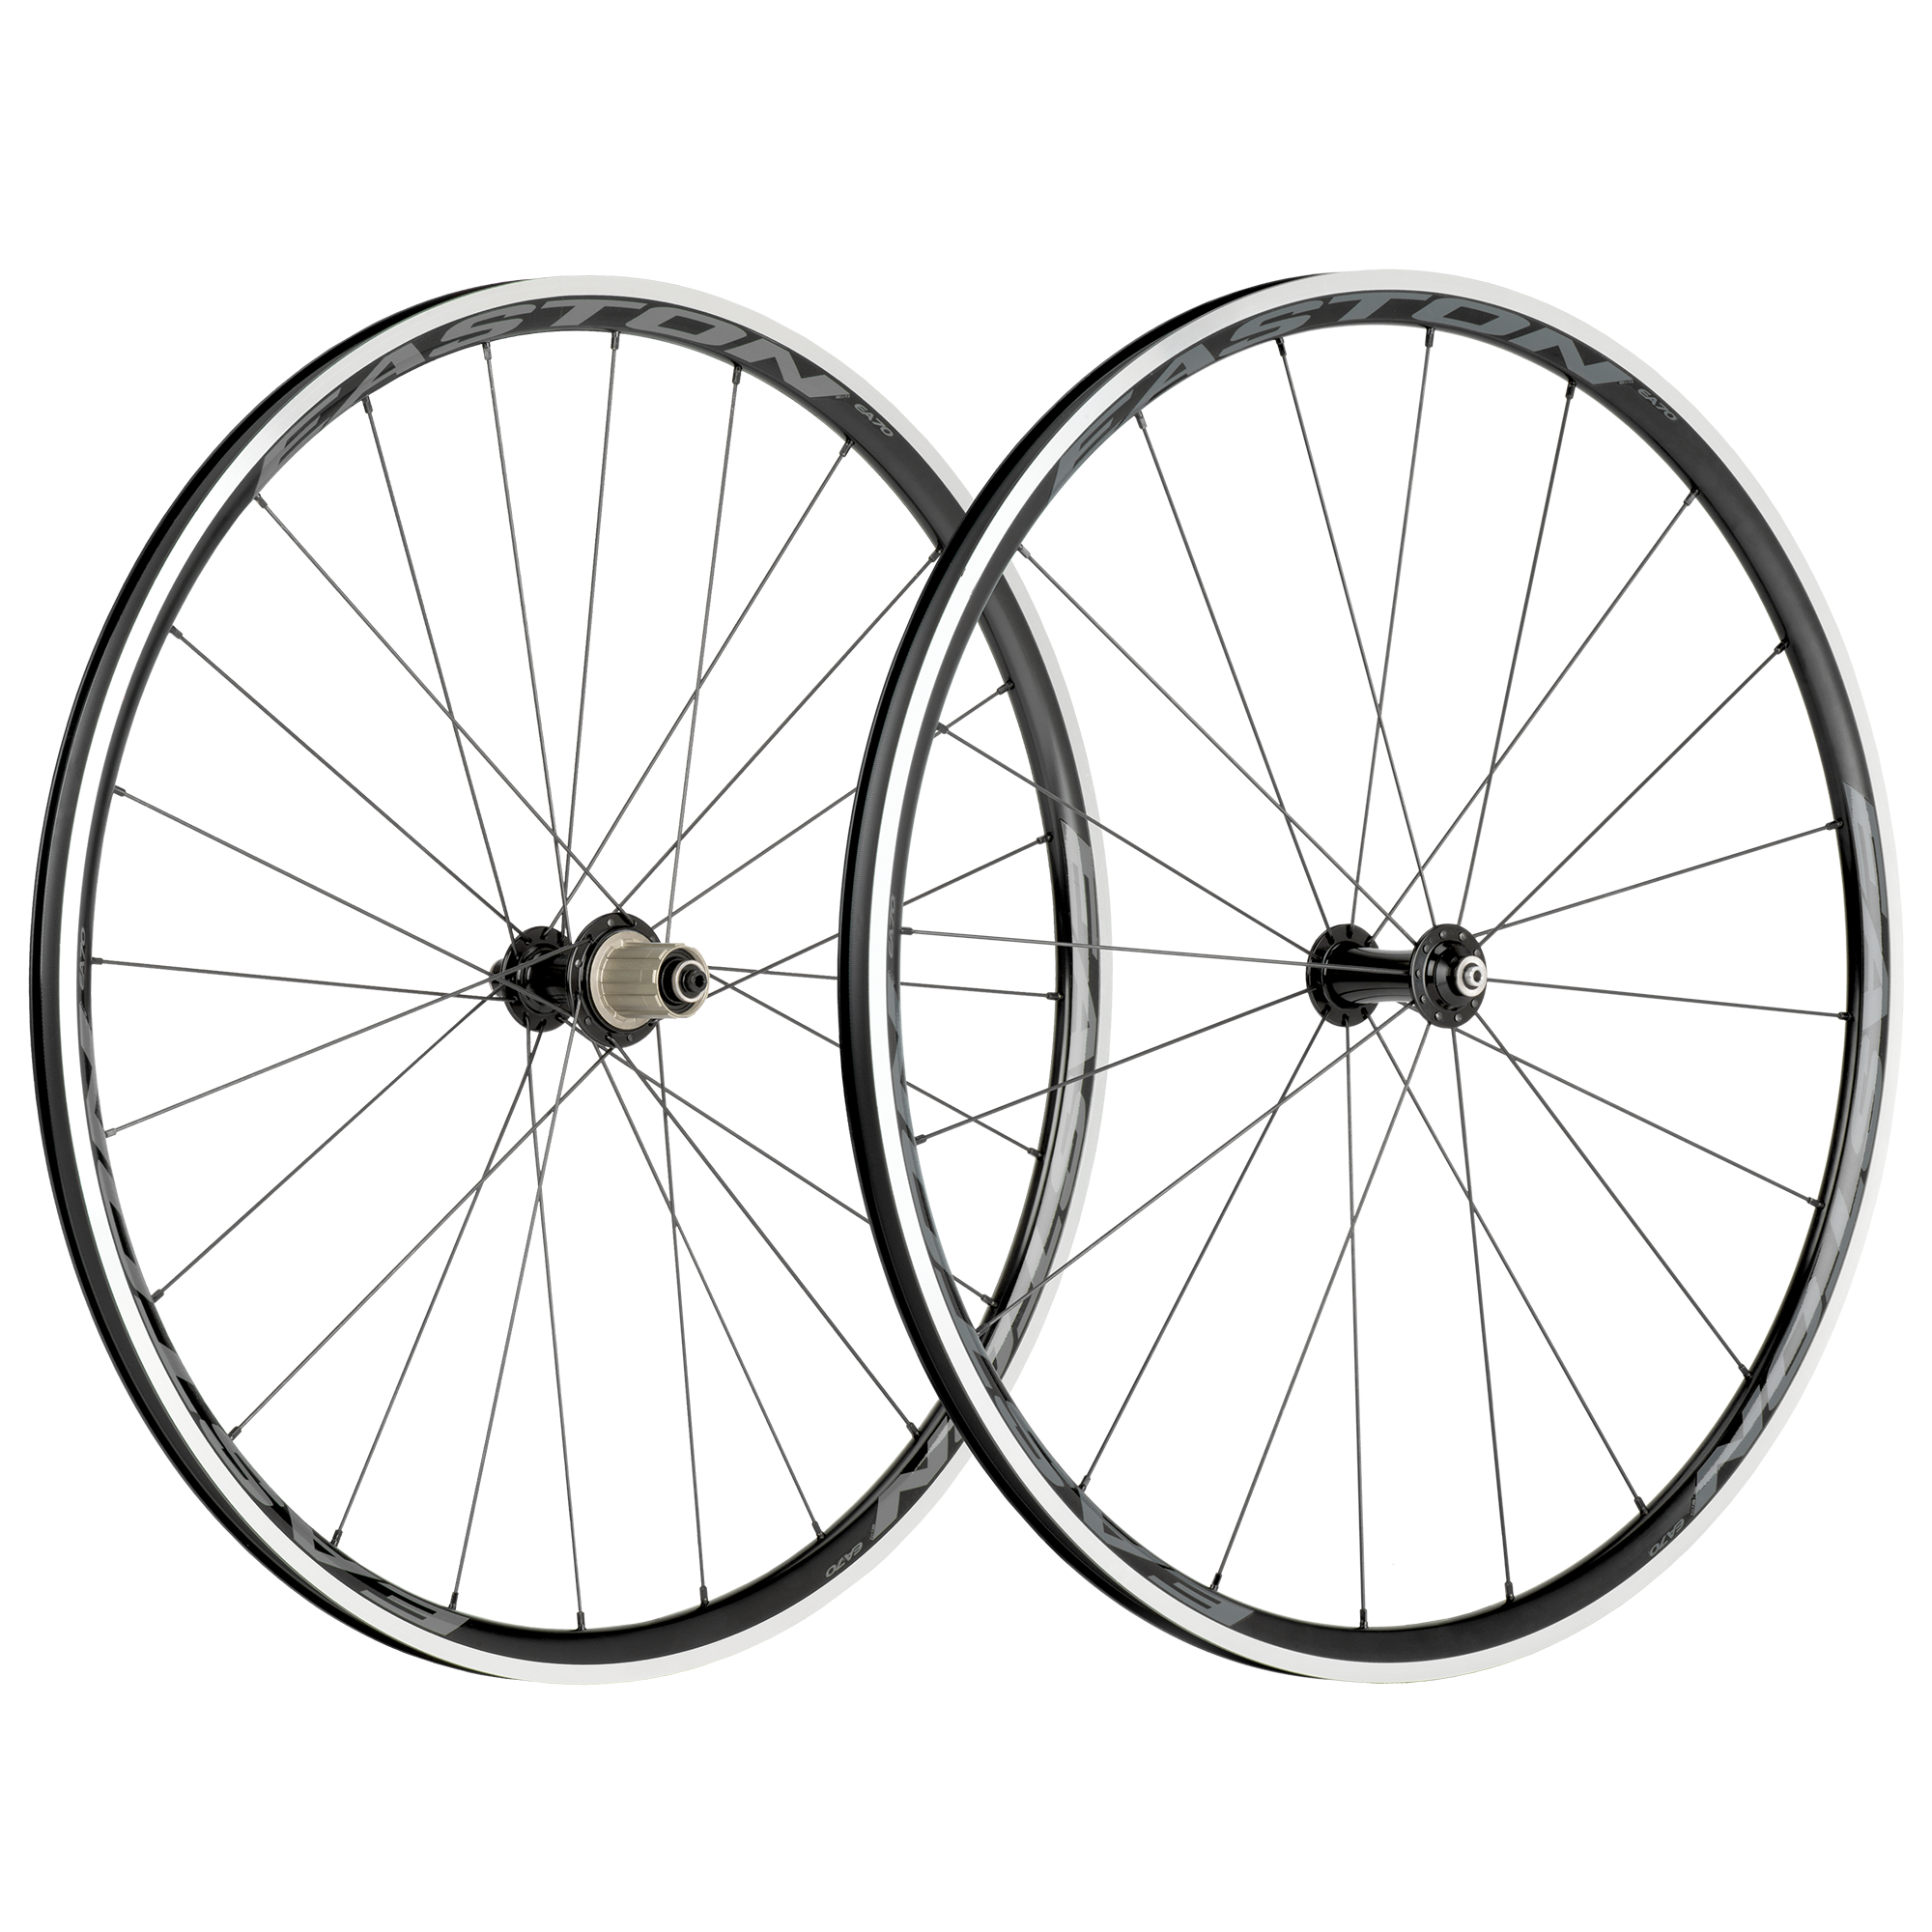 Ea easton cycling. Rim drawing png freeuse library